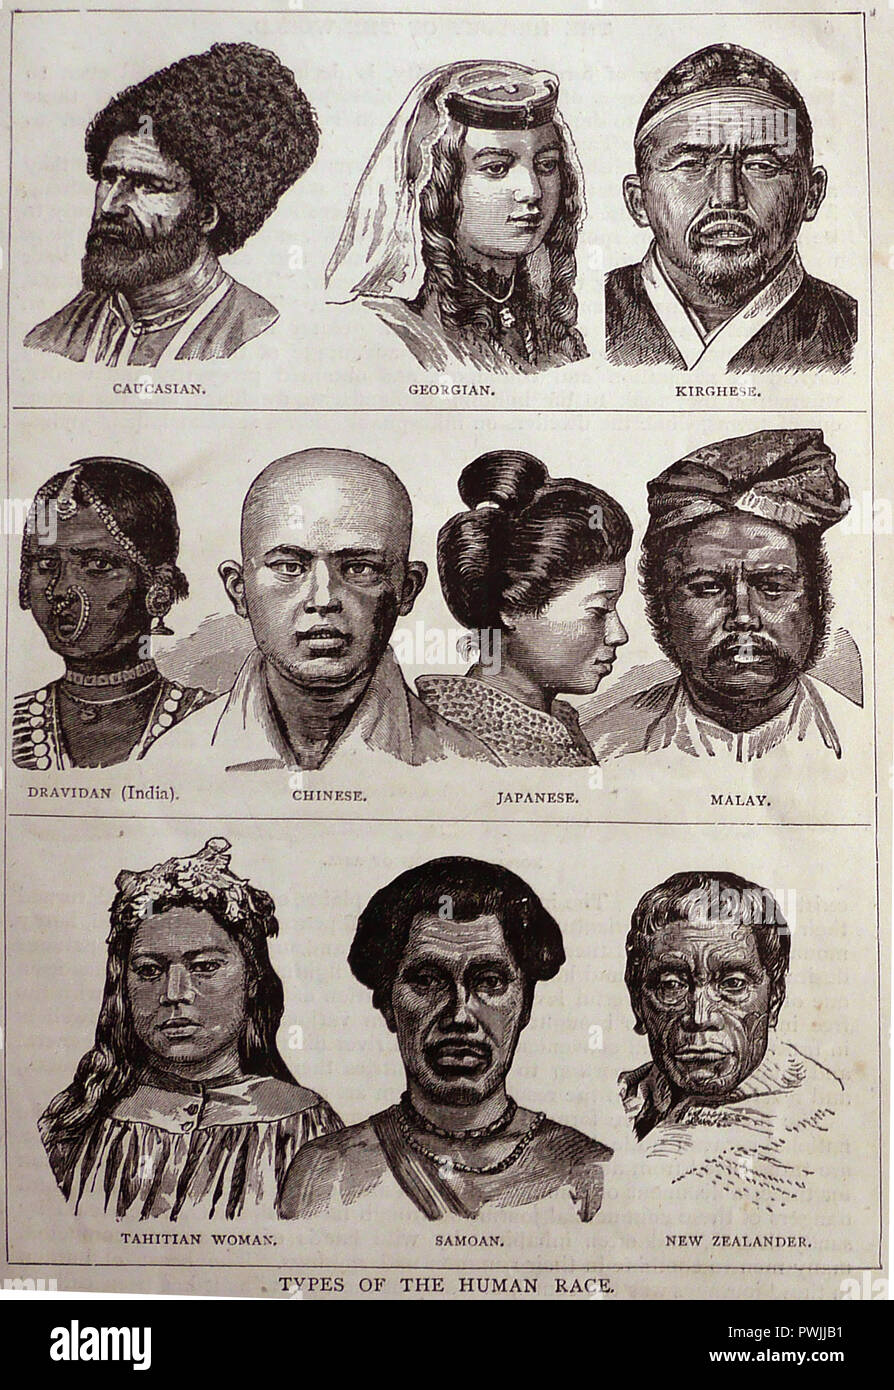 Facial features of the racial types of the human race, from Harmsworth Illustrated History of the World Circa, 1908 - Stock Image